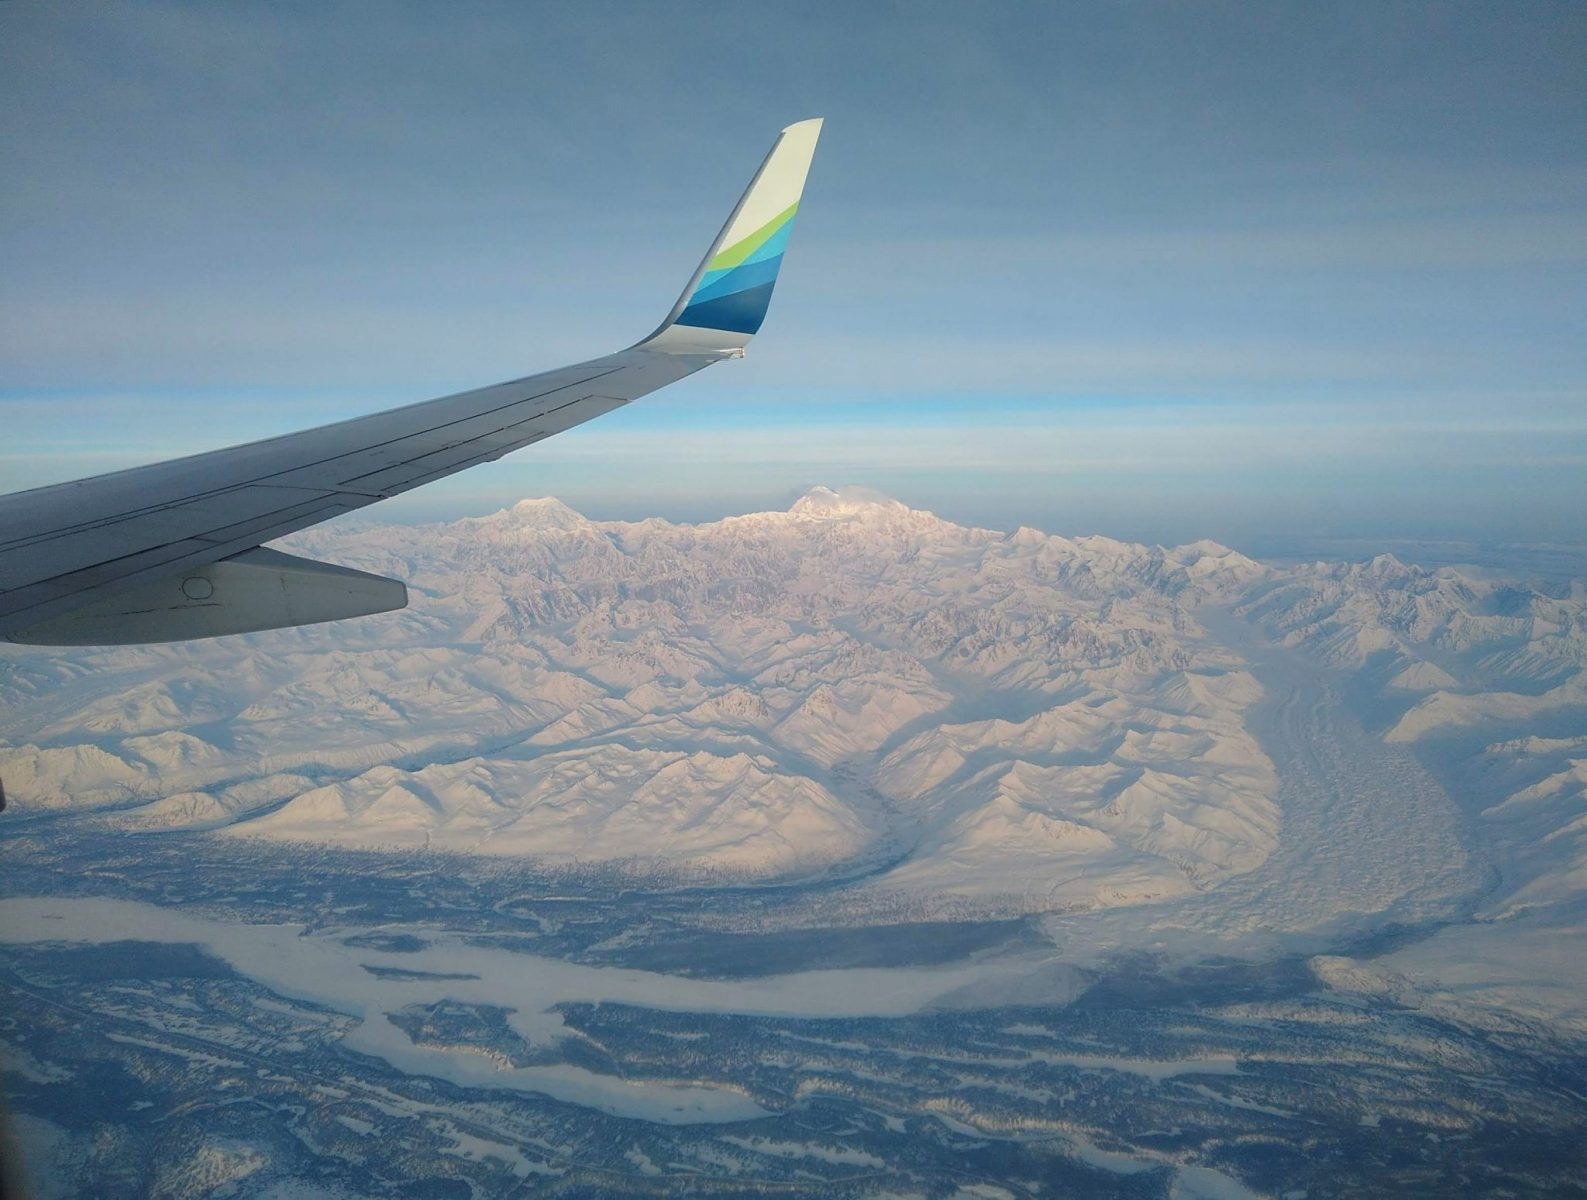 an airplane wing over high mountains and glaciers and a river below